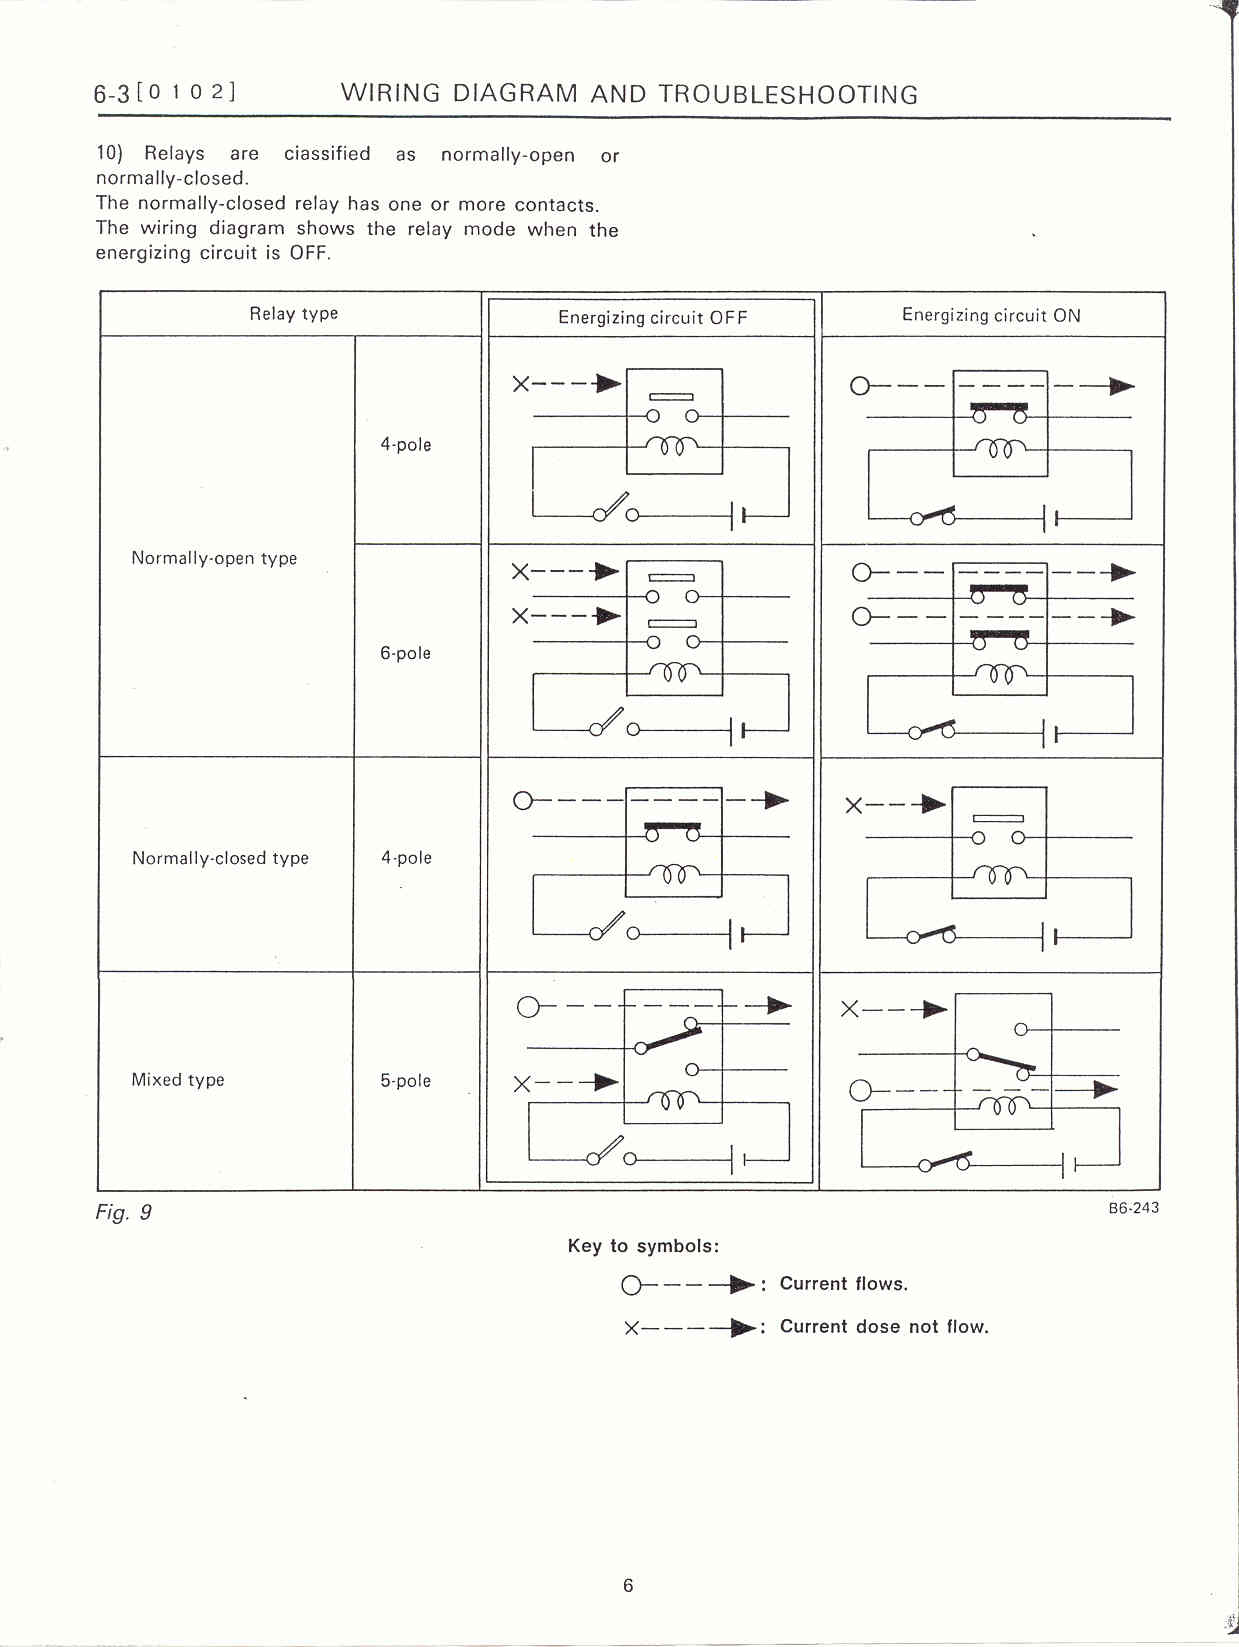 12 volt relay wiring diagram symbols 12 image wiring a 12v relay solidfonts on 12 volt relay wiring diagram symbols